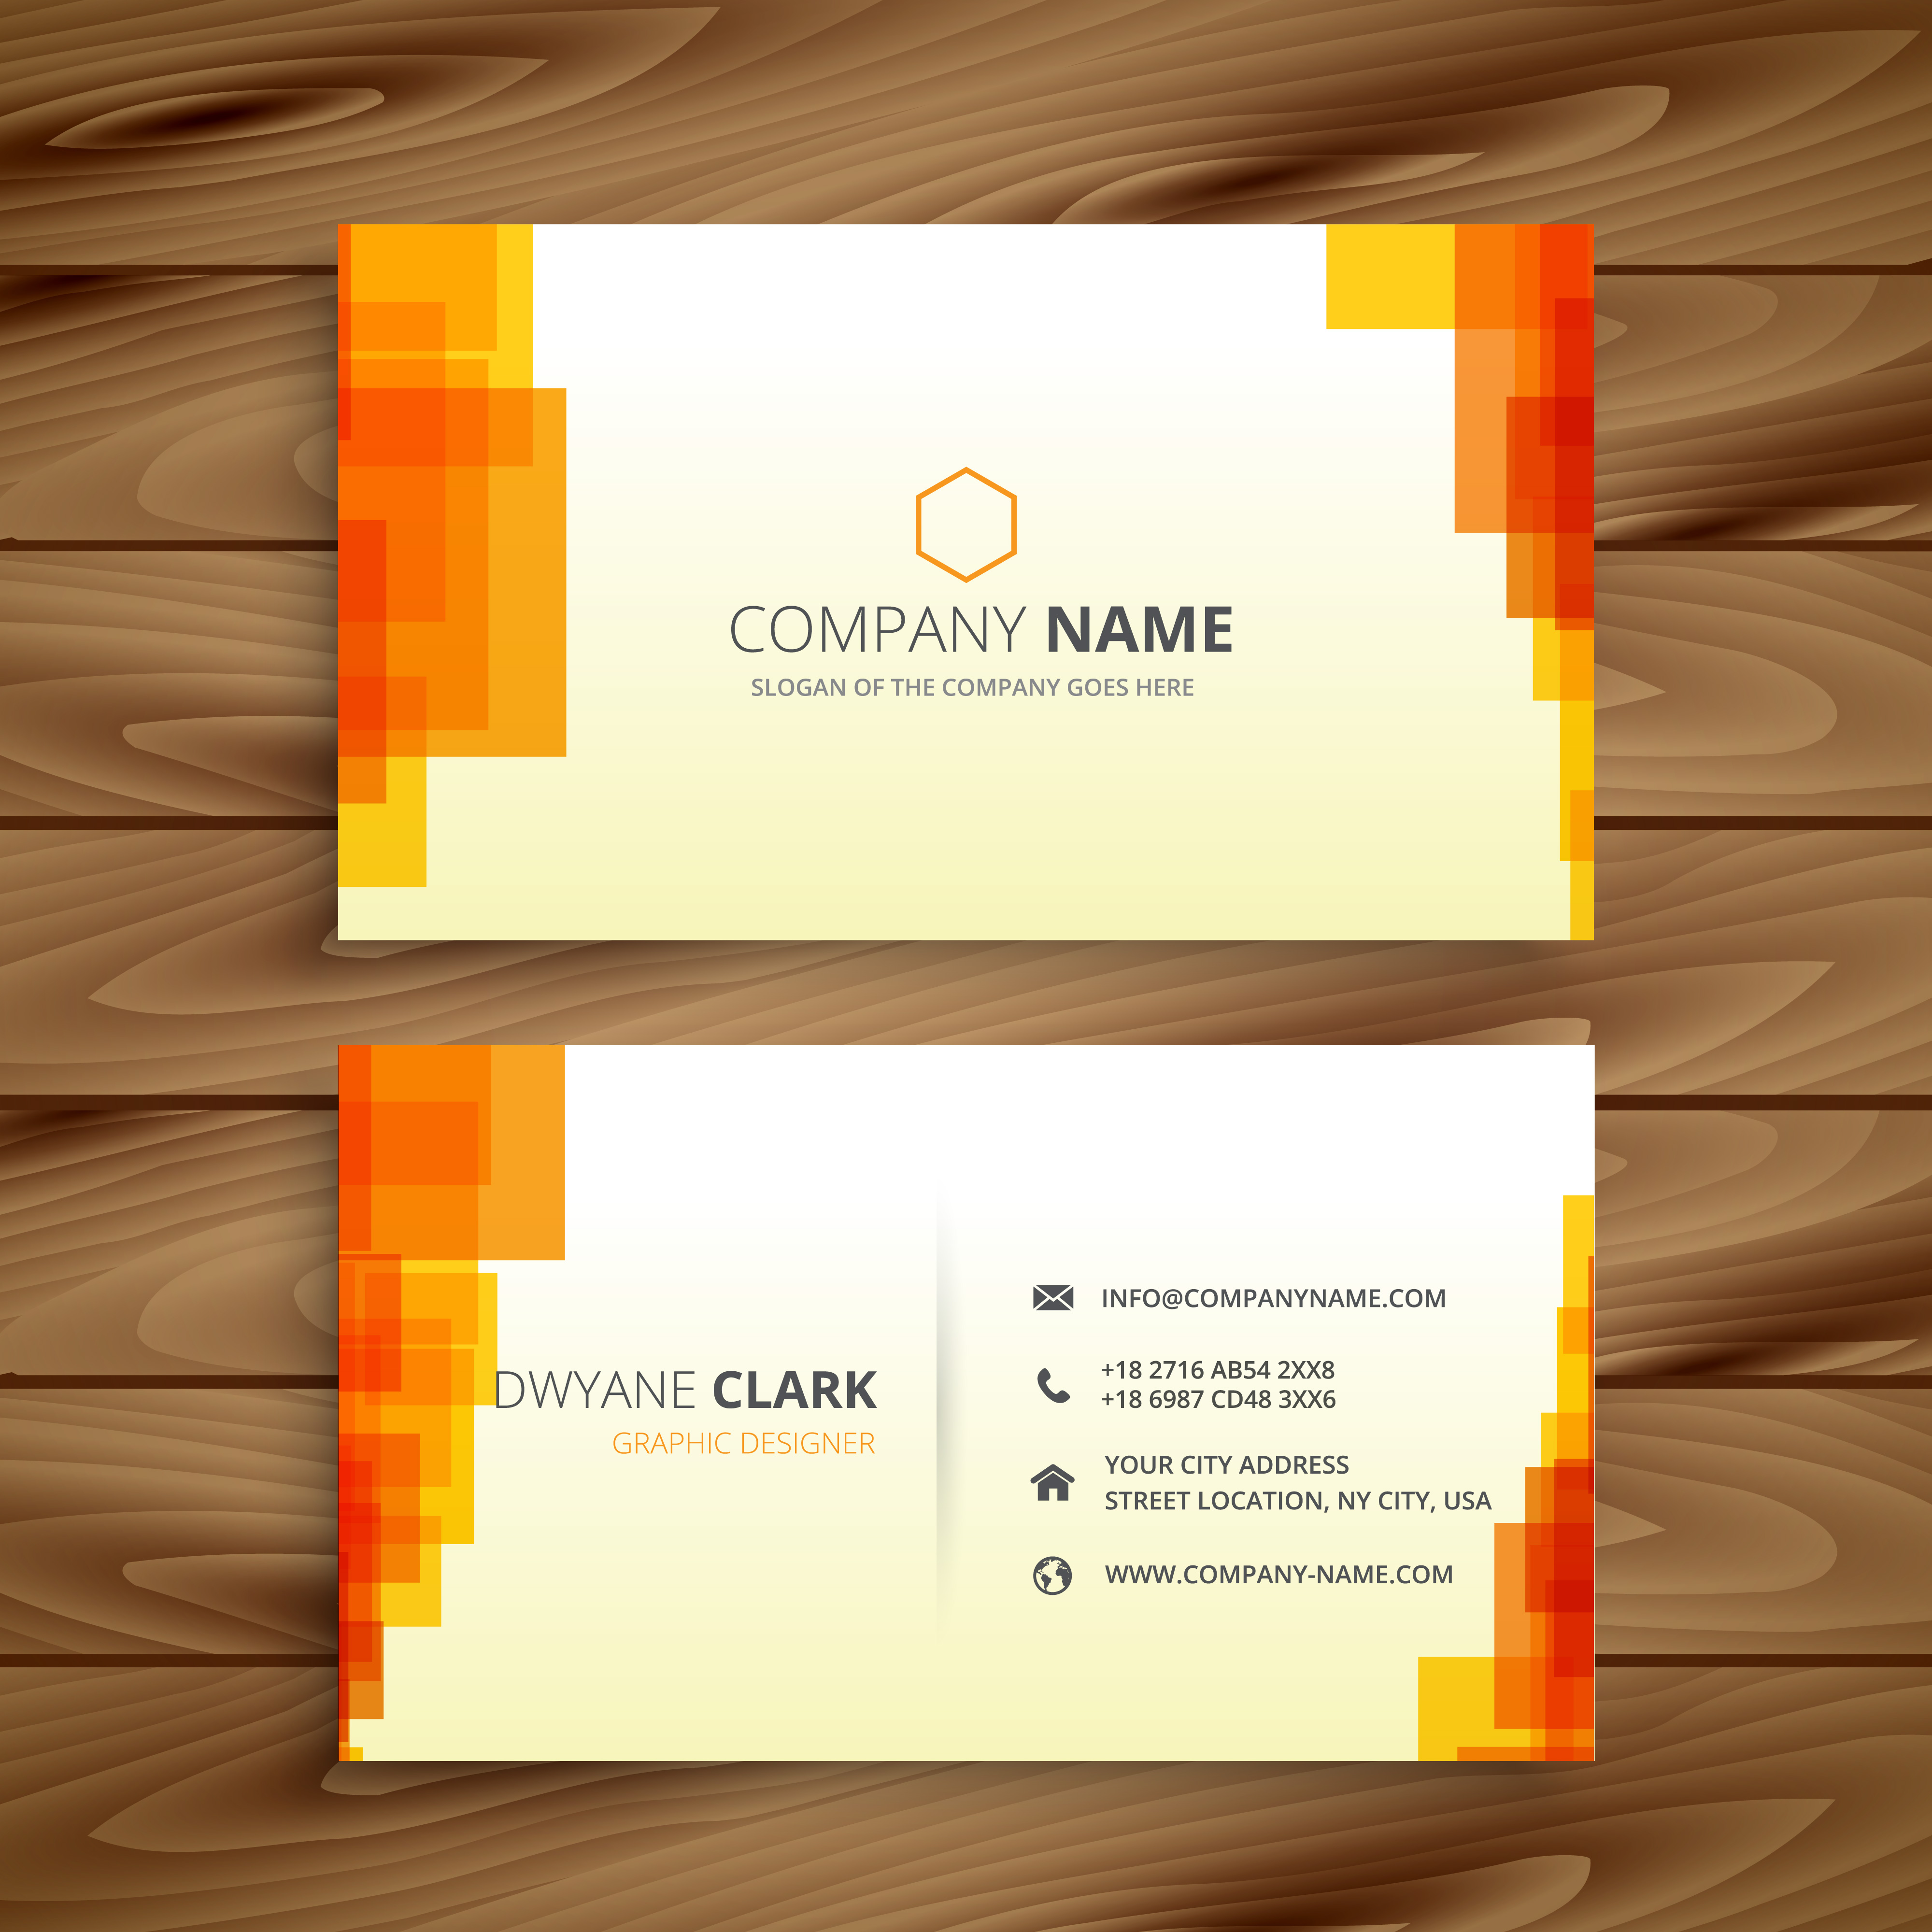 Blue Corporate Stationary Pack By Betty Design: Orange Pixilated Business Card Template Vector Design